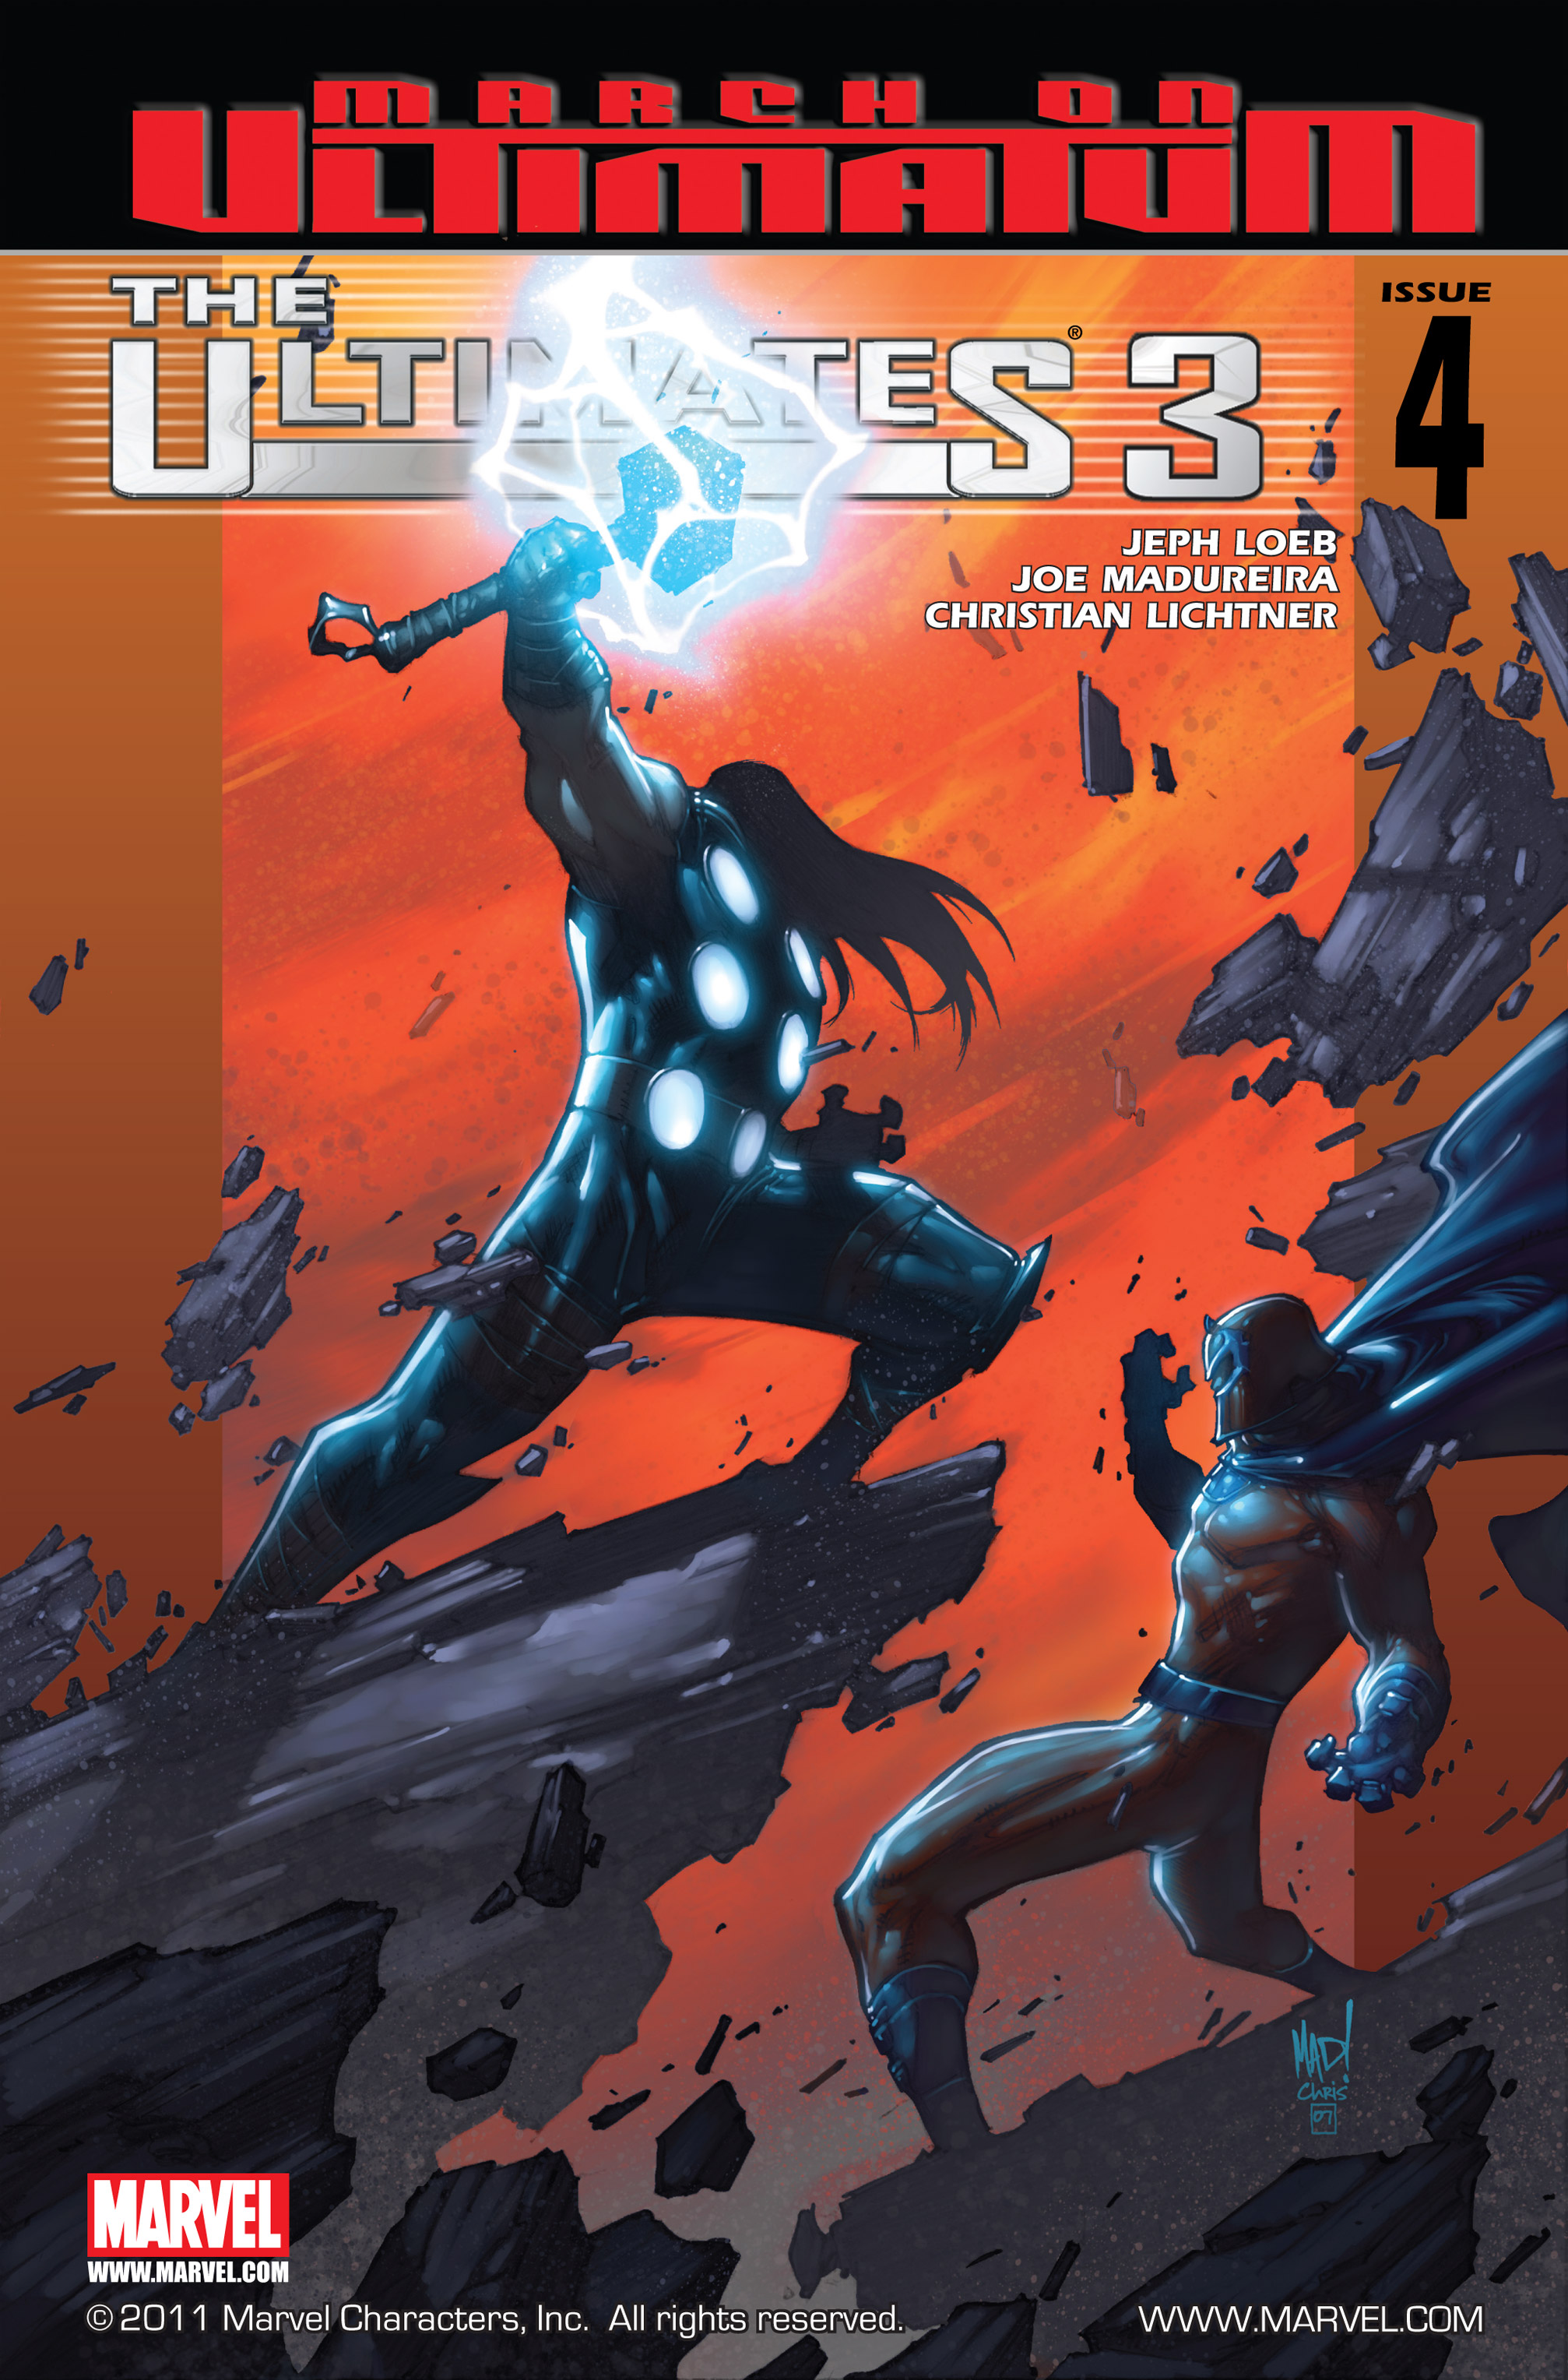 Ultimates 3 Vol 1 5 | Marvel Database | Fandom powered by Wikia